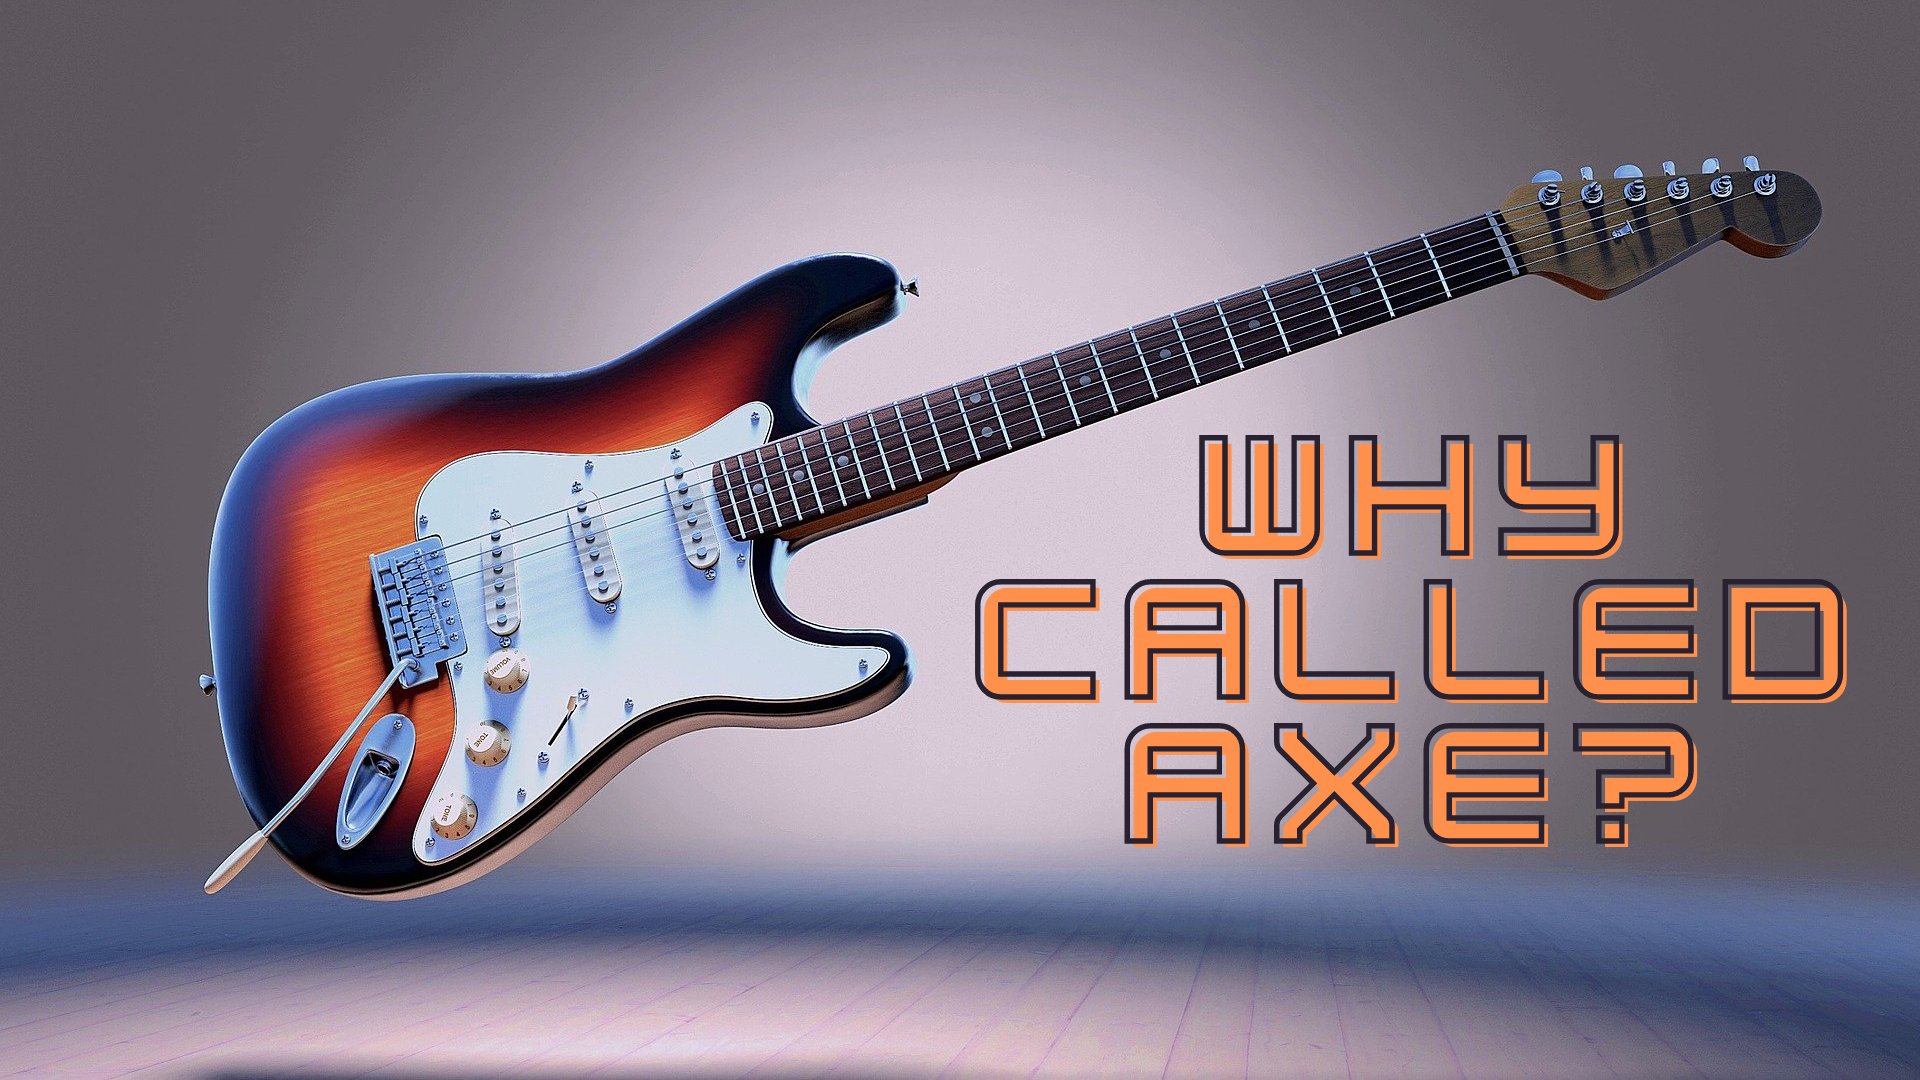 Why is a Guitar called an Axe?